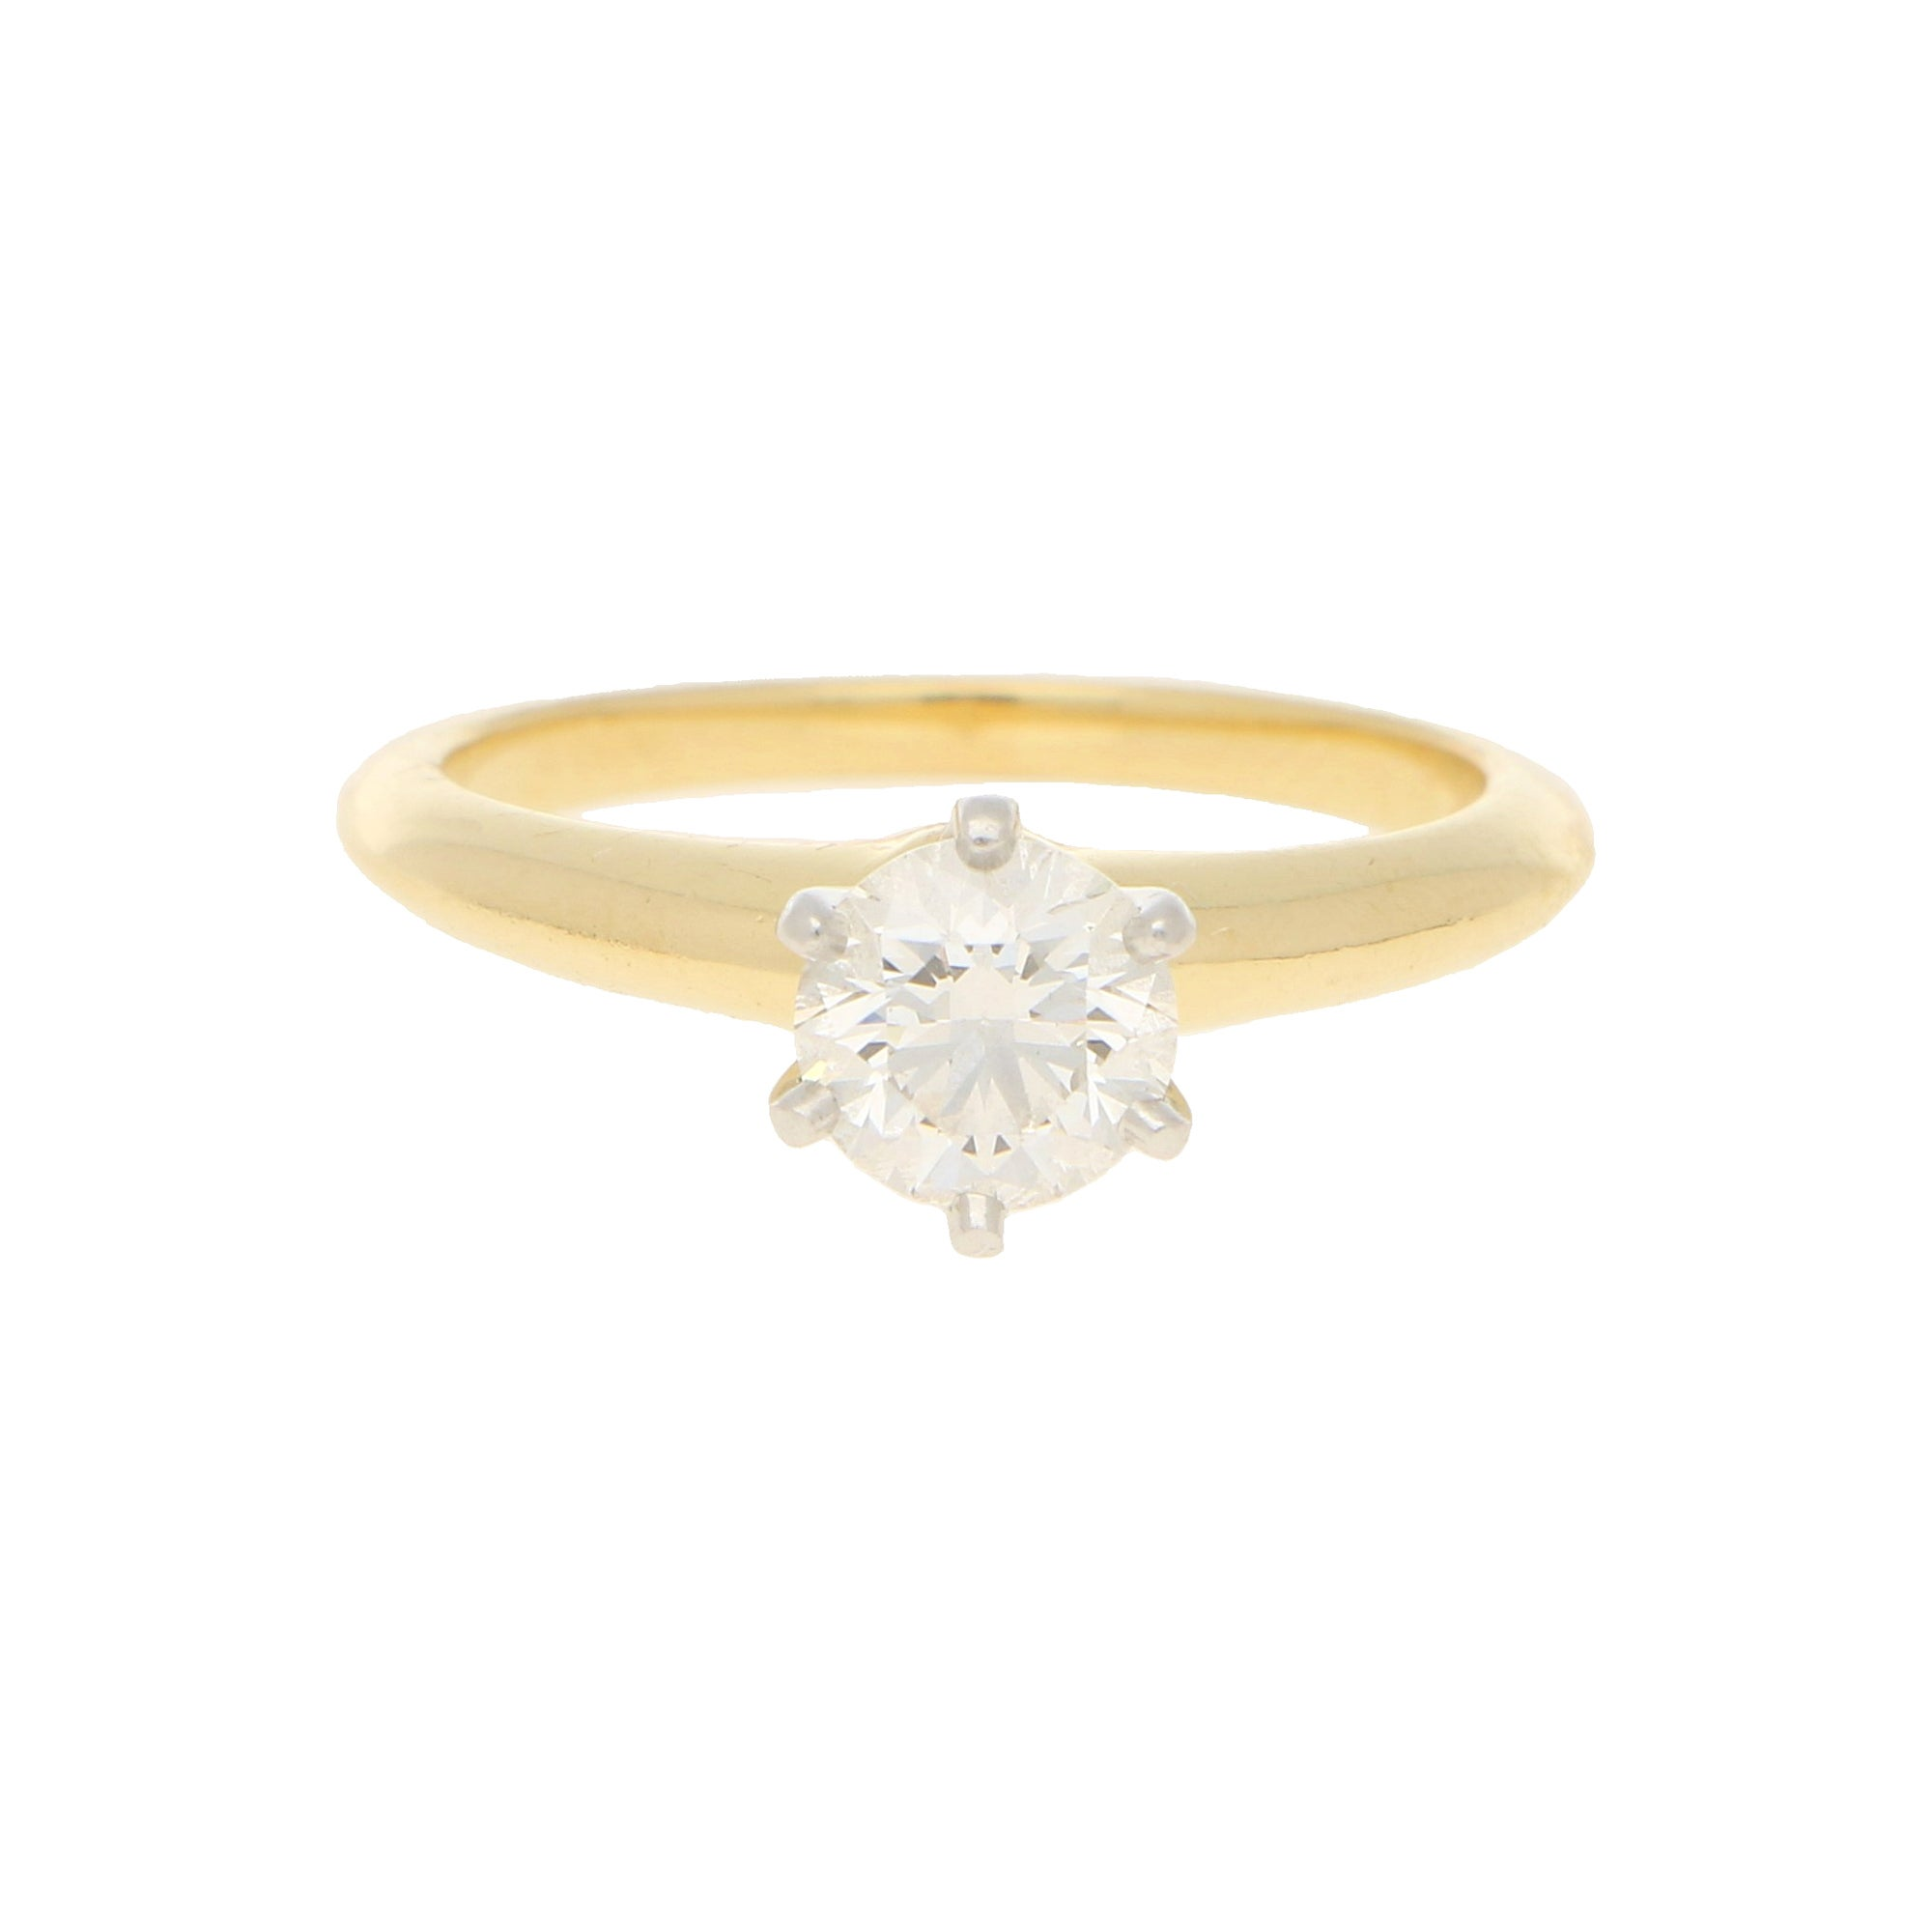 Tiffany & Co Solitaire Diamond Ring in 18ct Yellow Gold 0.86 Carat